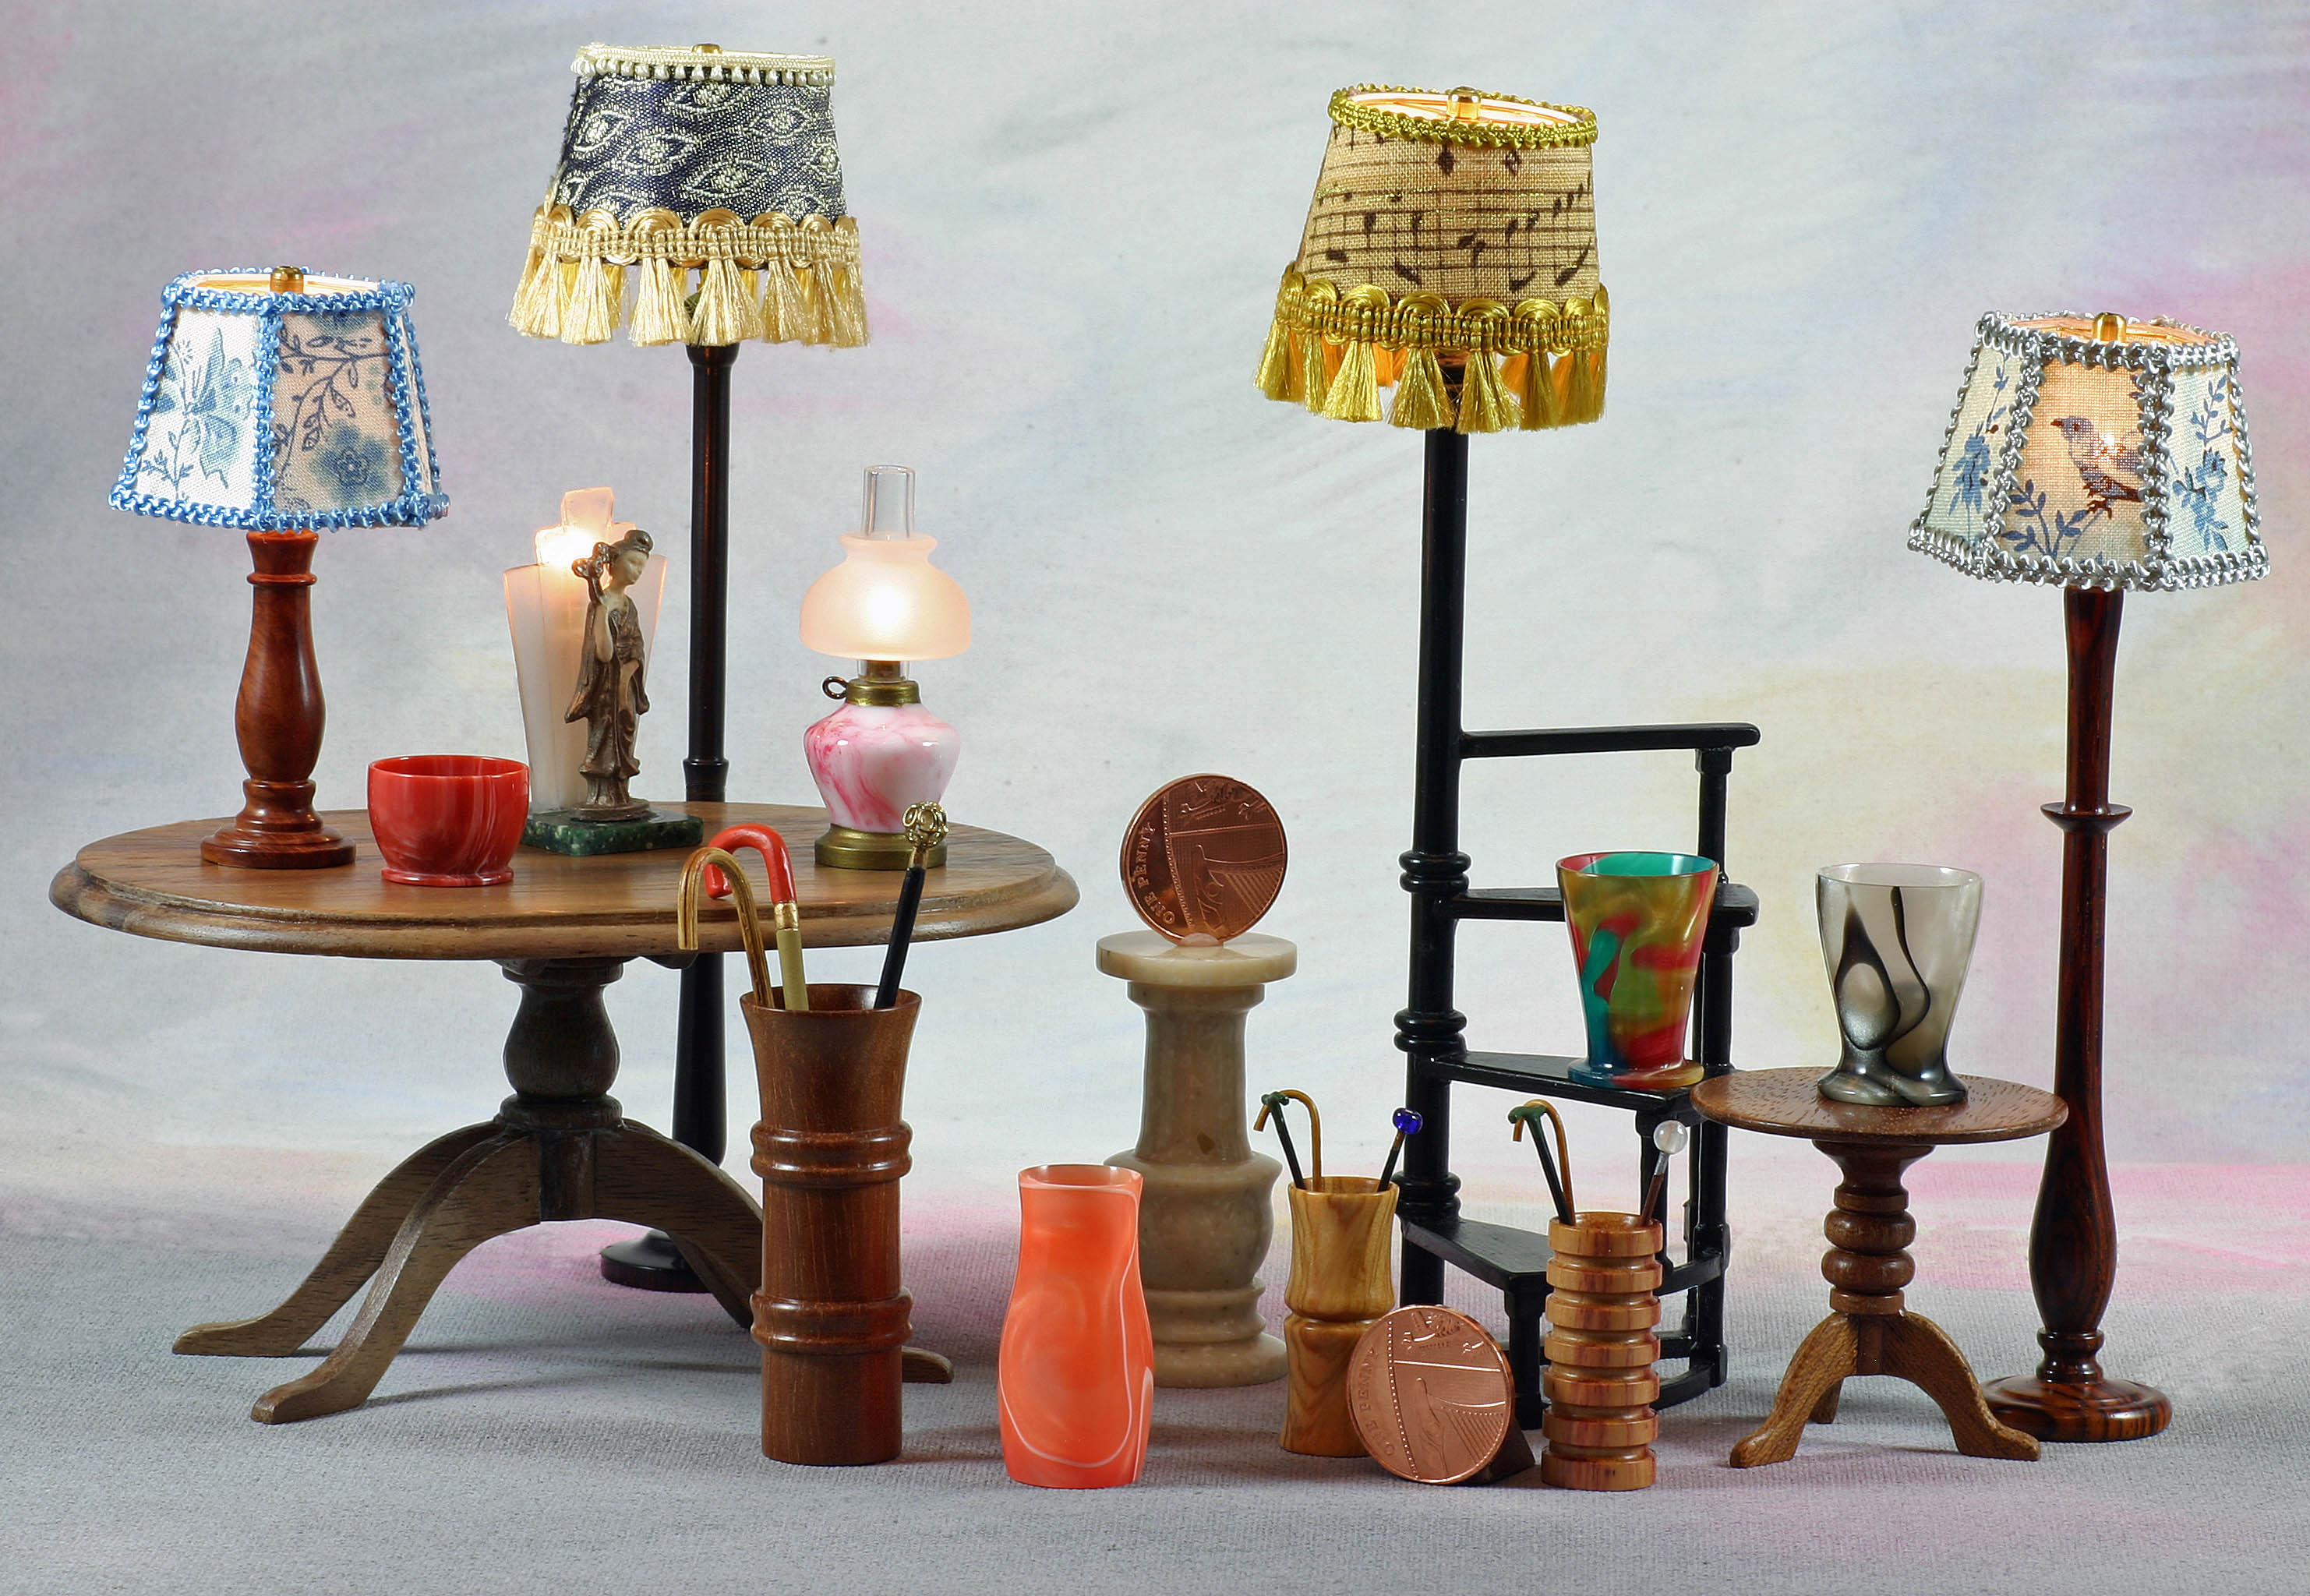 Miniature table and art deco style lights by Al'Turn'Ative Proportions